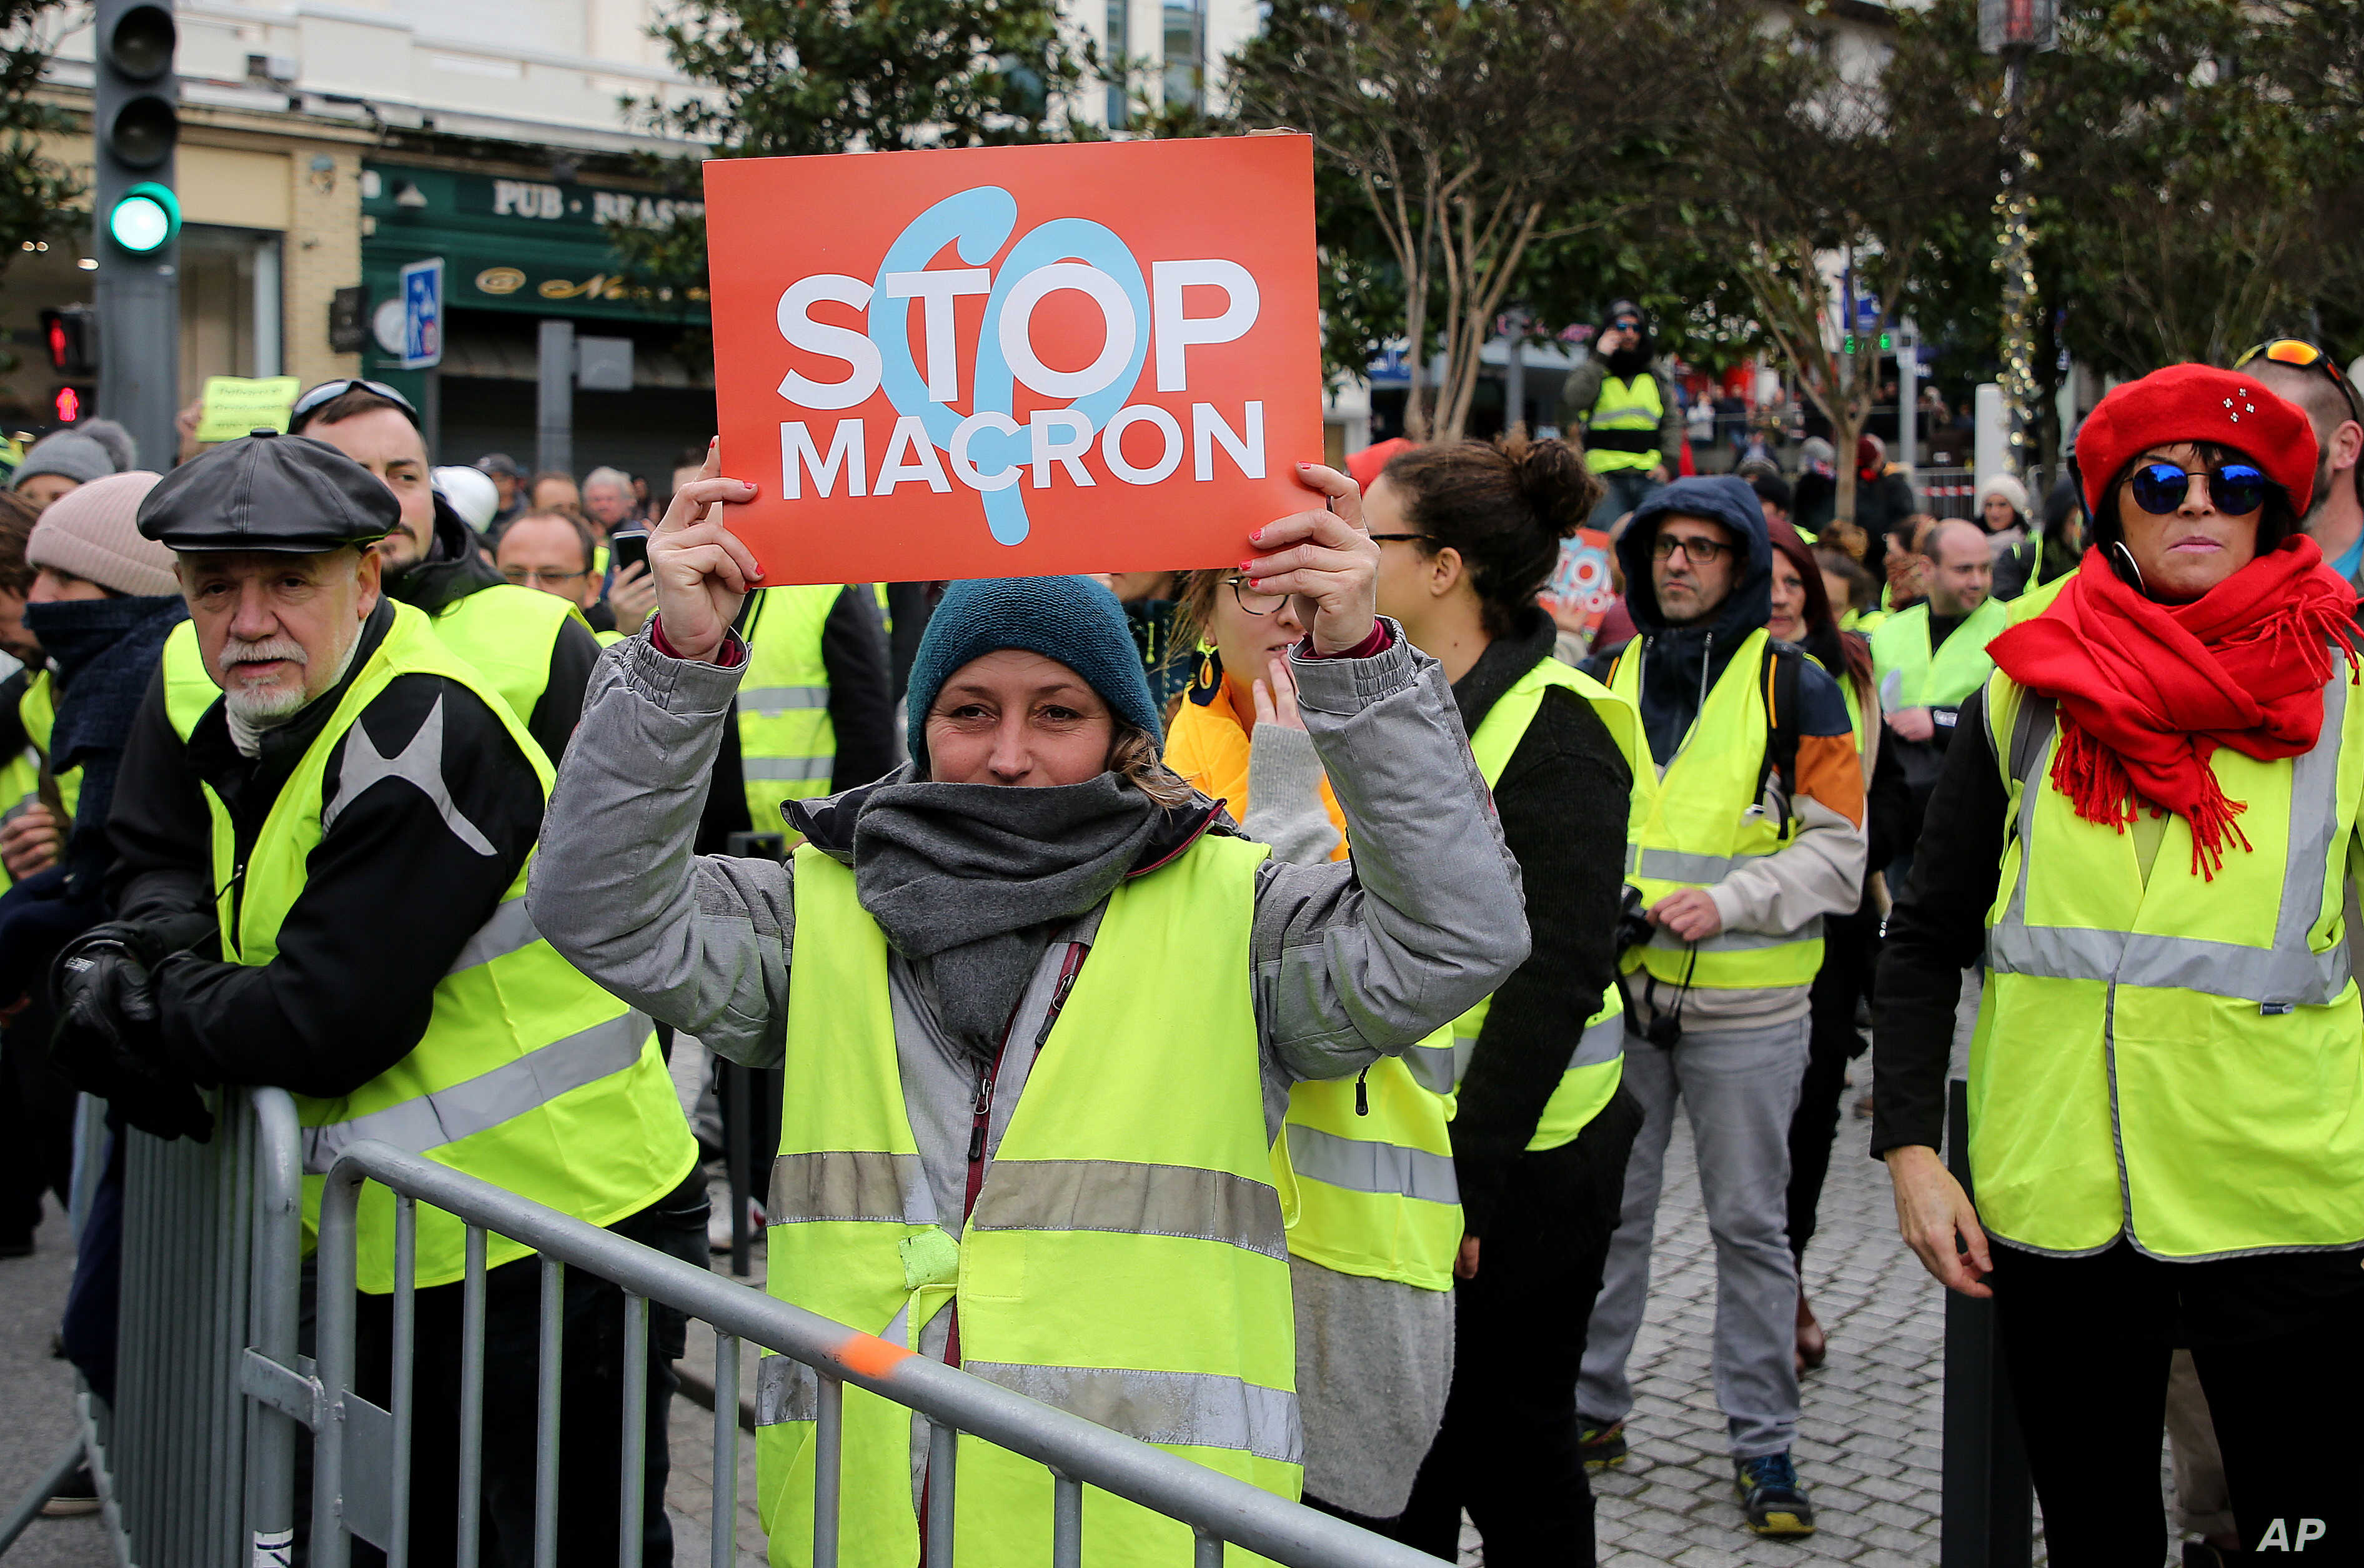 A demonstrator wearing her yellow vest holds a placard during a visit by French Foreign Minister Jean-Yves Le Drian in Biarritz, southwestern France, Dec. 18, 2018.